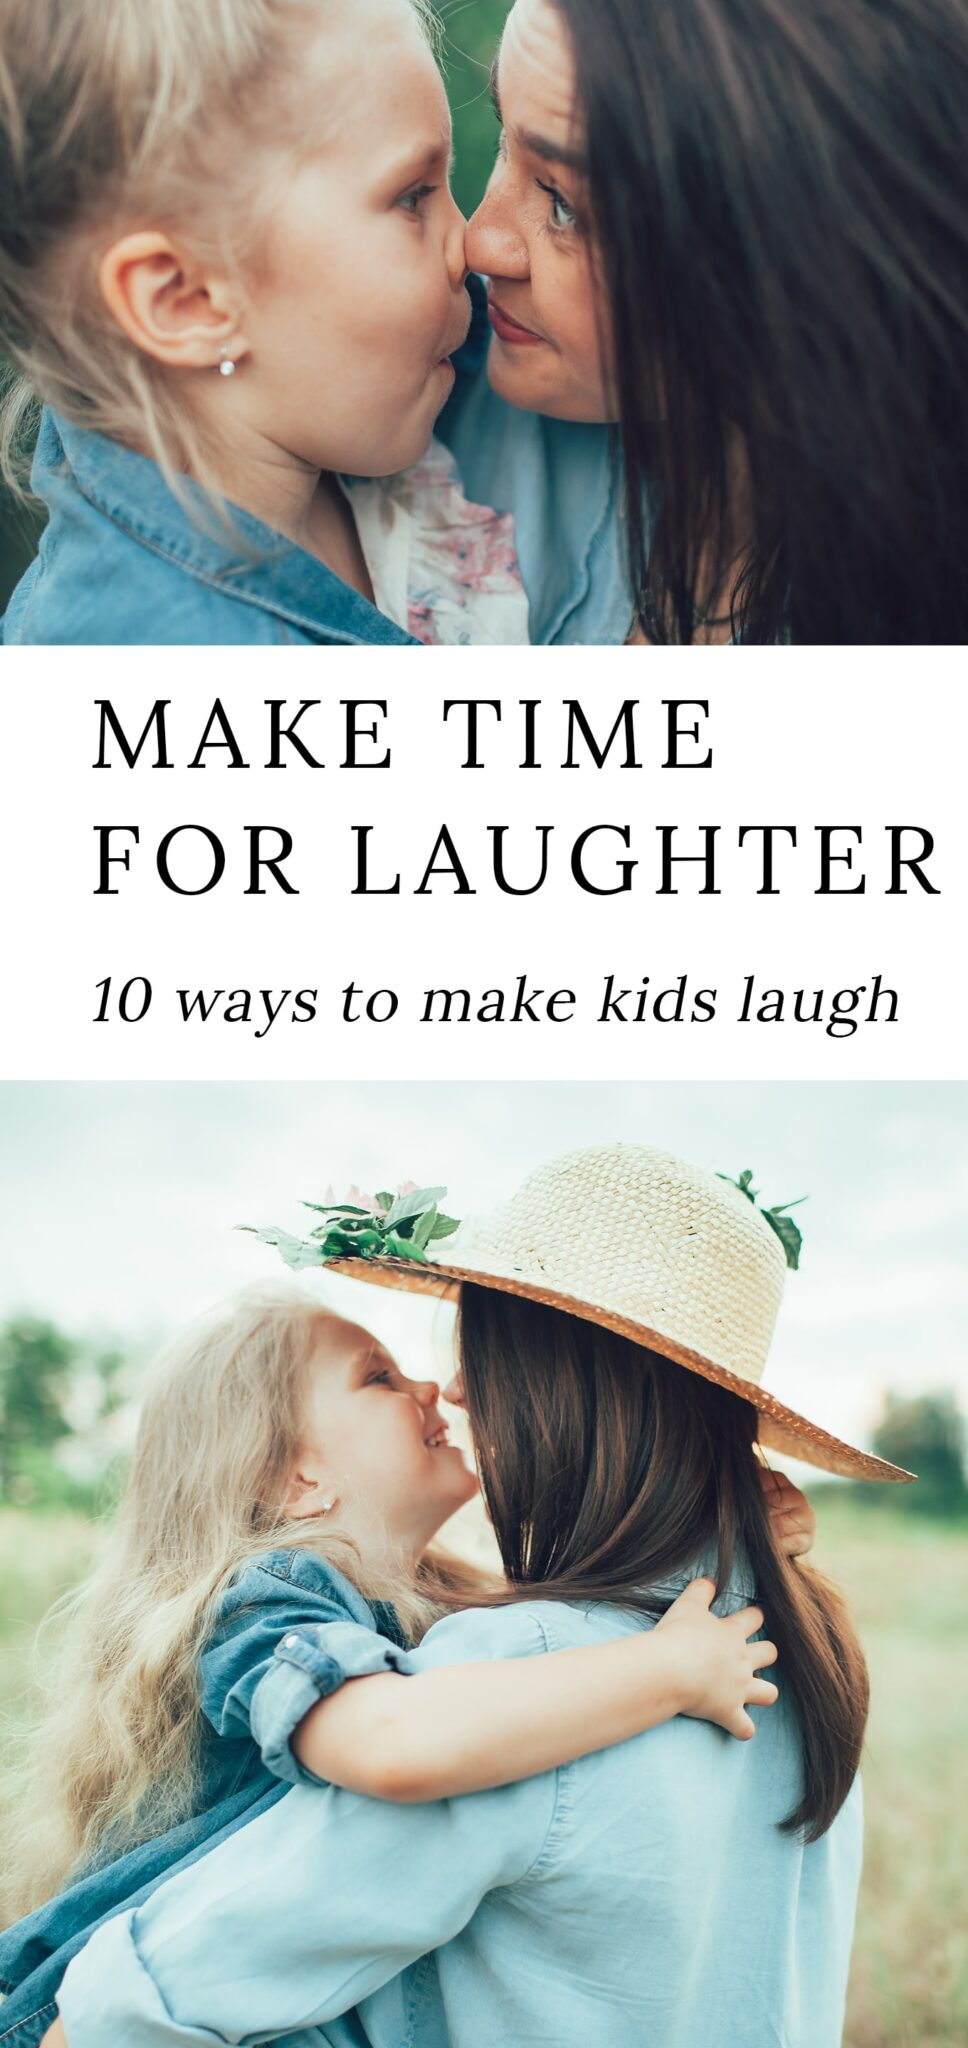 10 Ways to Make Kids Laugh